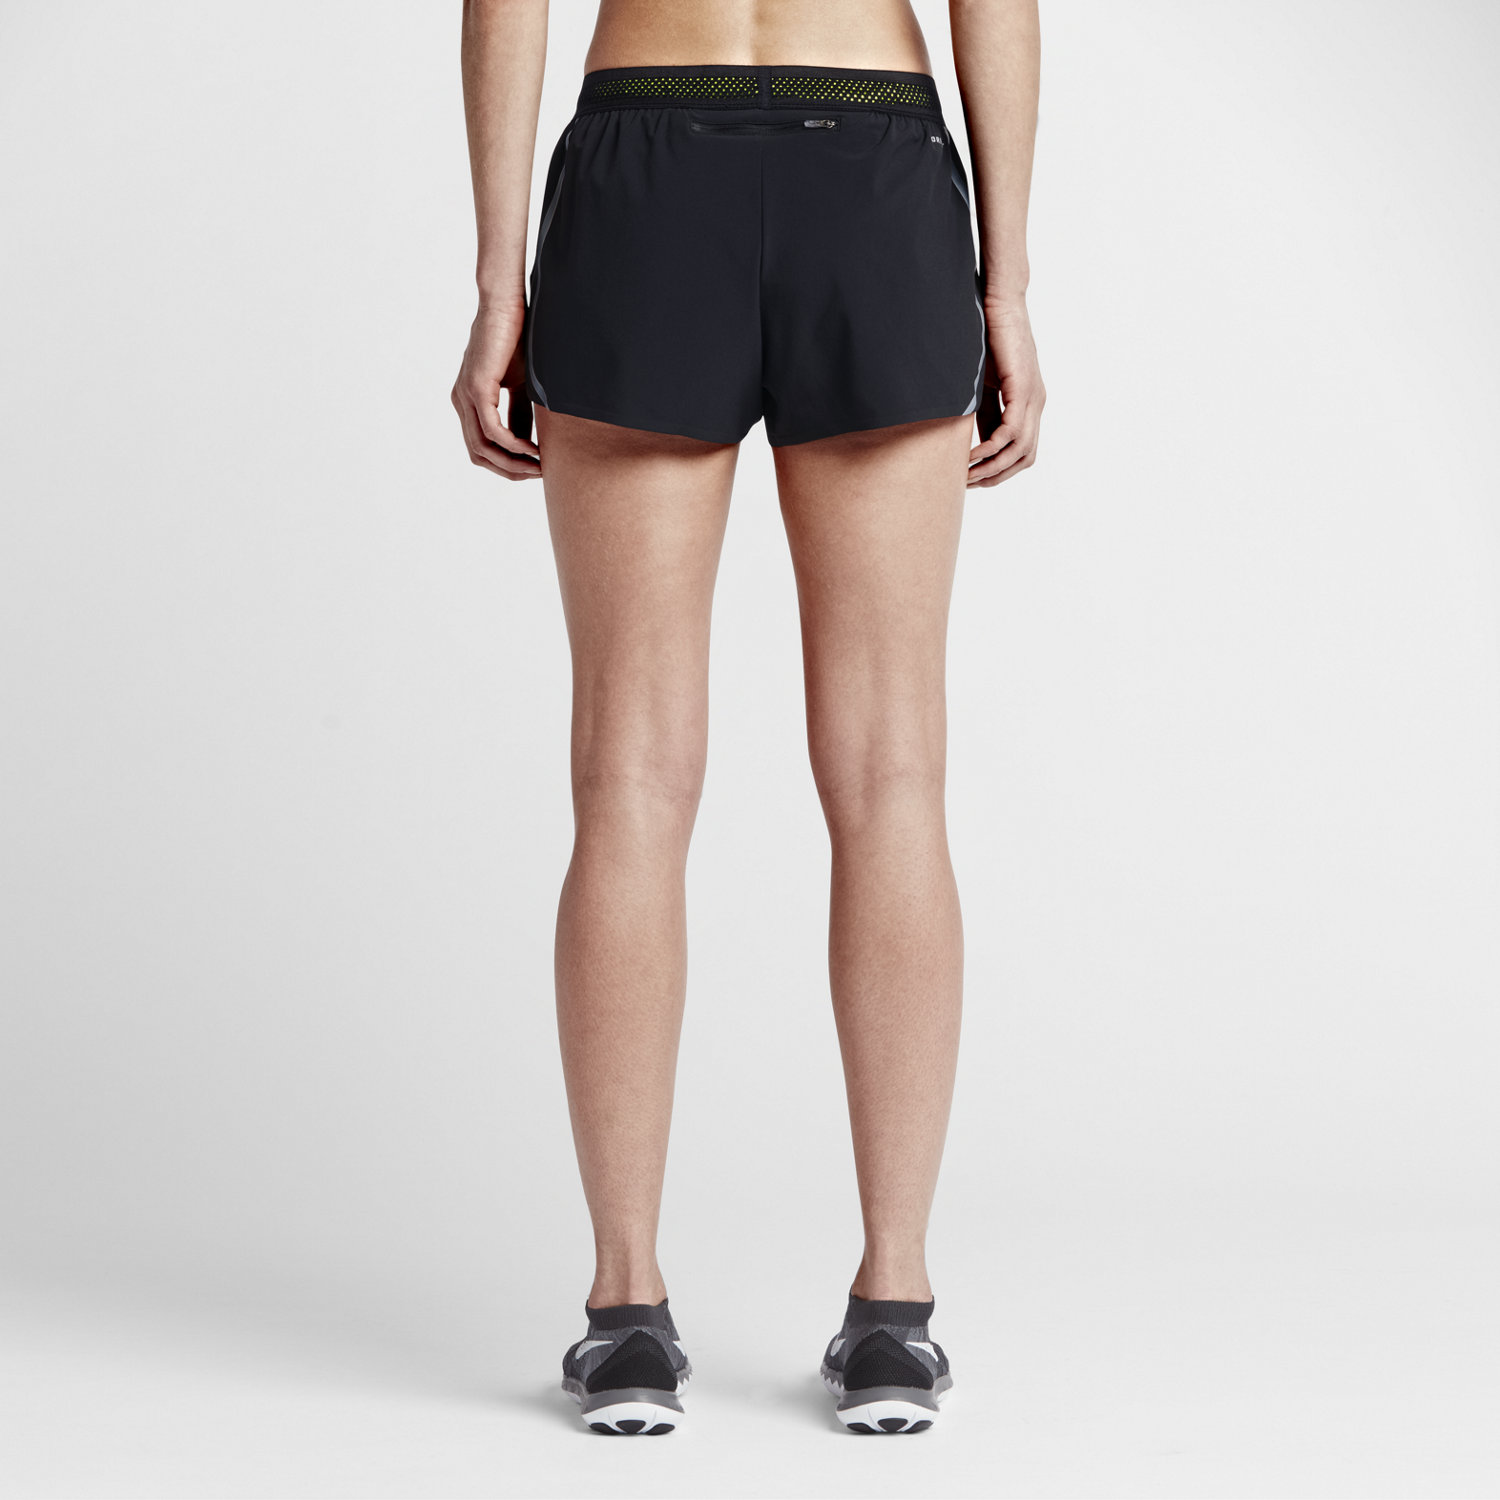 Nike womens running shorts with liner - Nike Womens Running Shorts With Liner 12